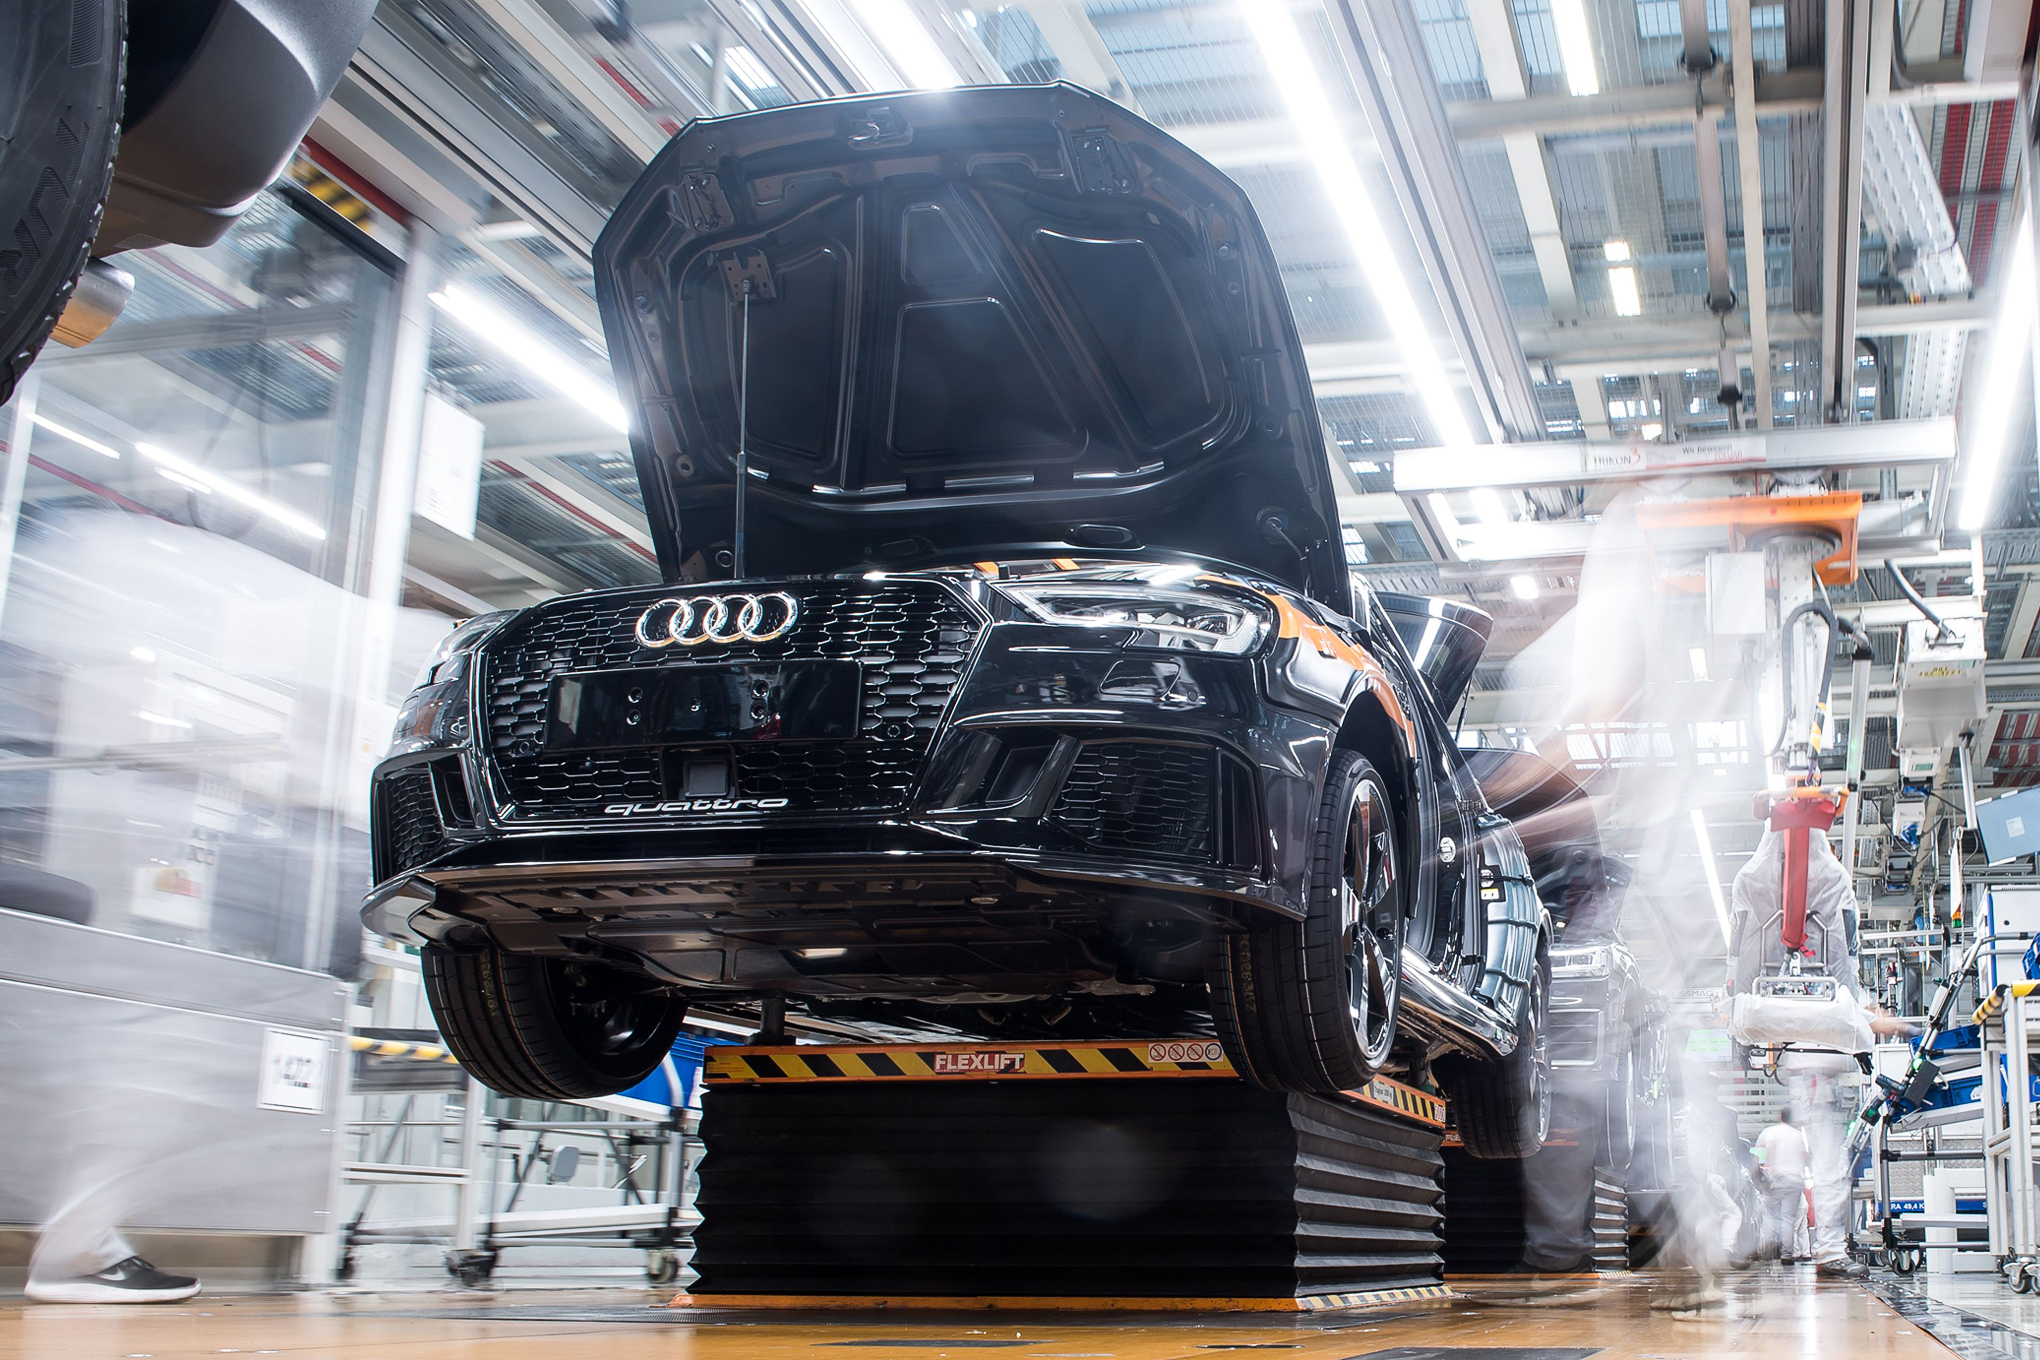 Germany's car industry can't build its own battery cells